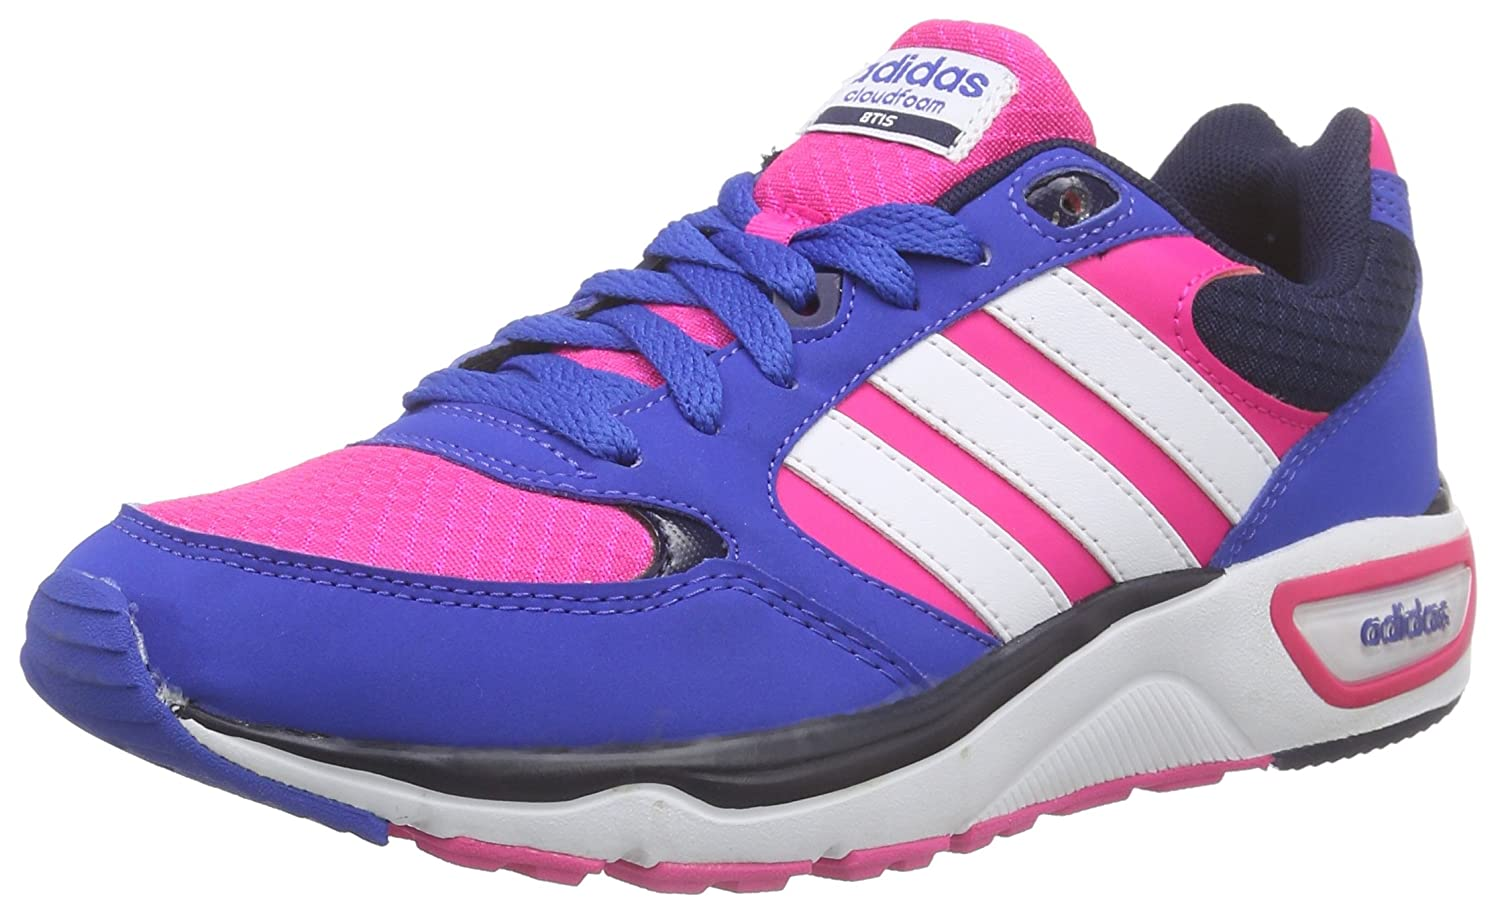 purchase cheap aa70a eecd1 TG.38 Adidas Cloudfoam 8Tis W Scarpe da Corsa Donna - tualu.org